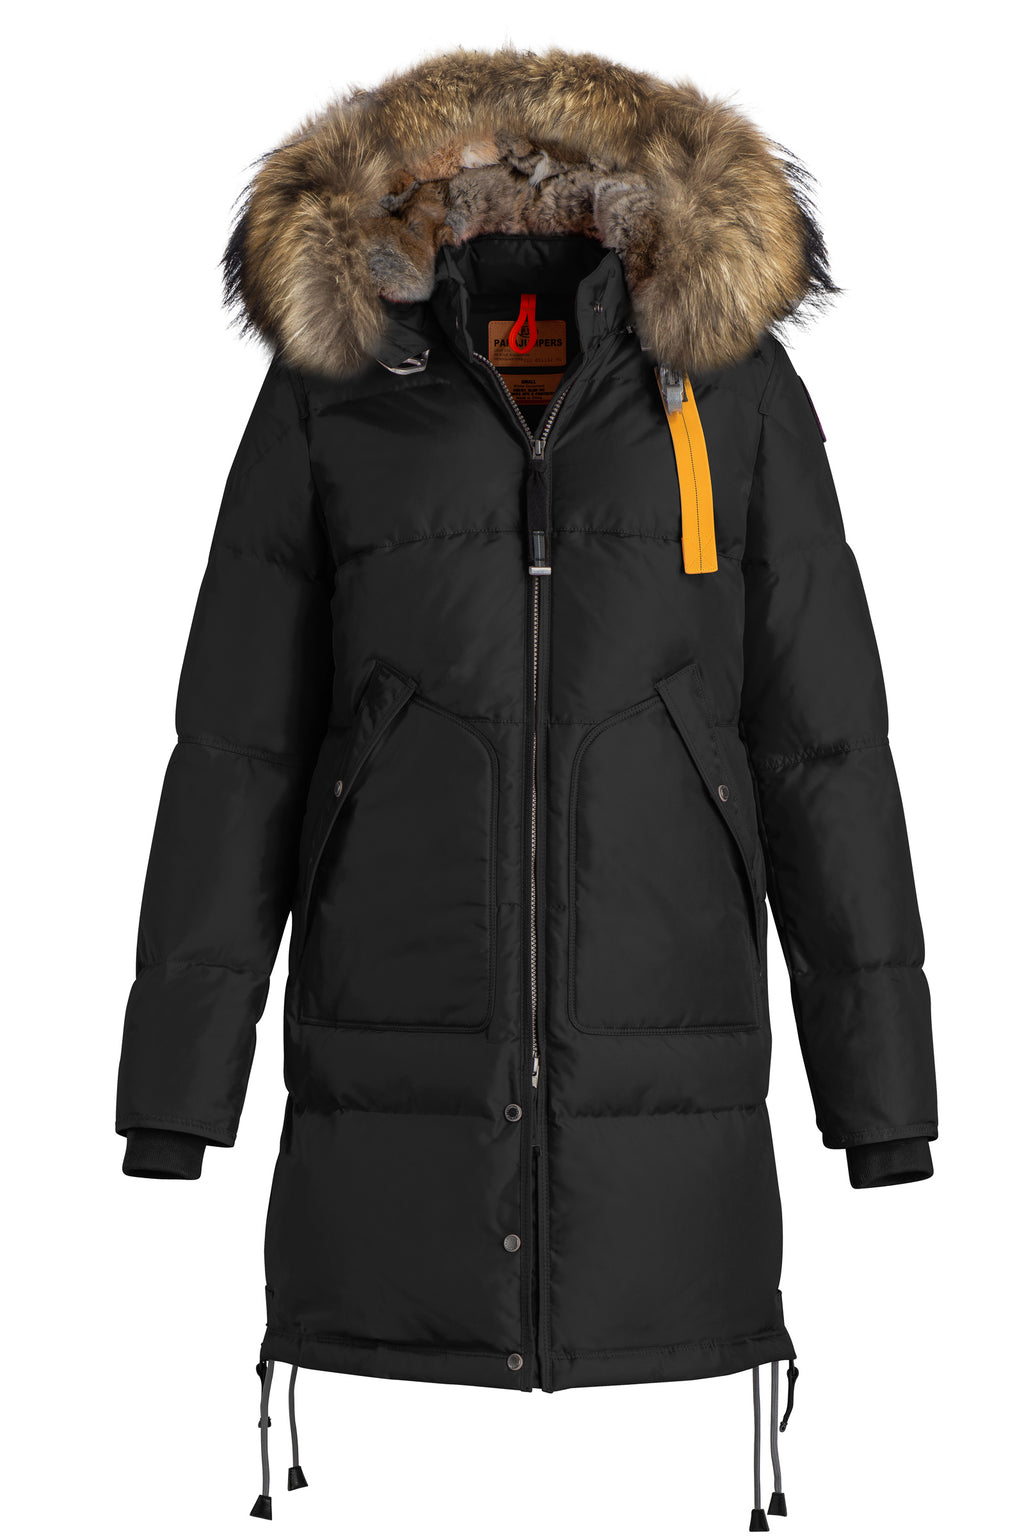 Parajumpers Long Bear Parka in Black